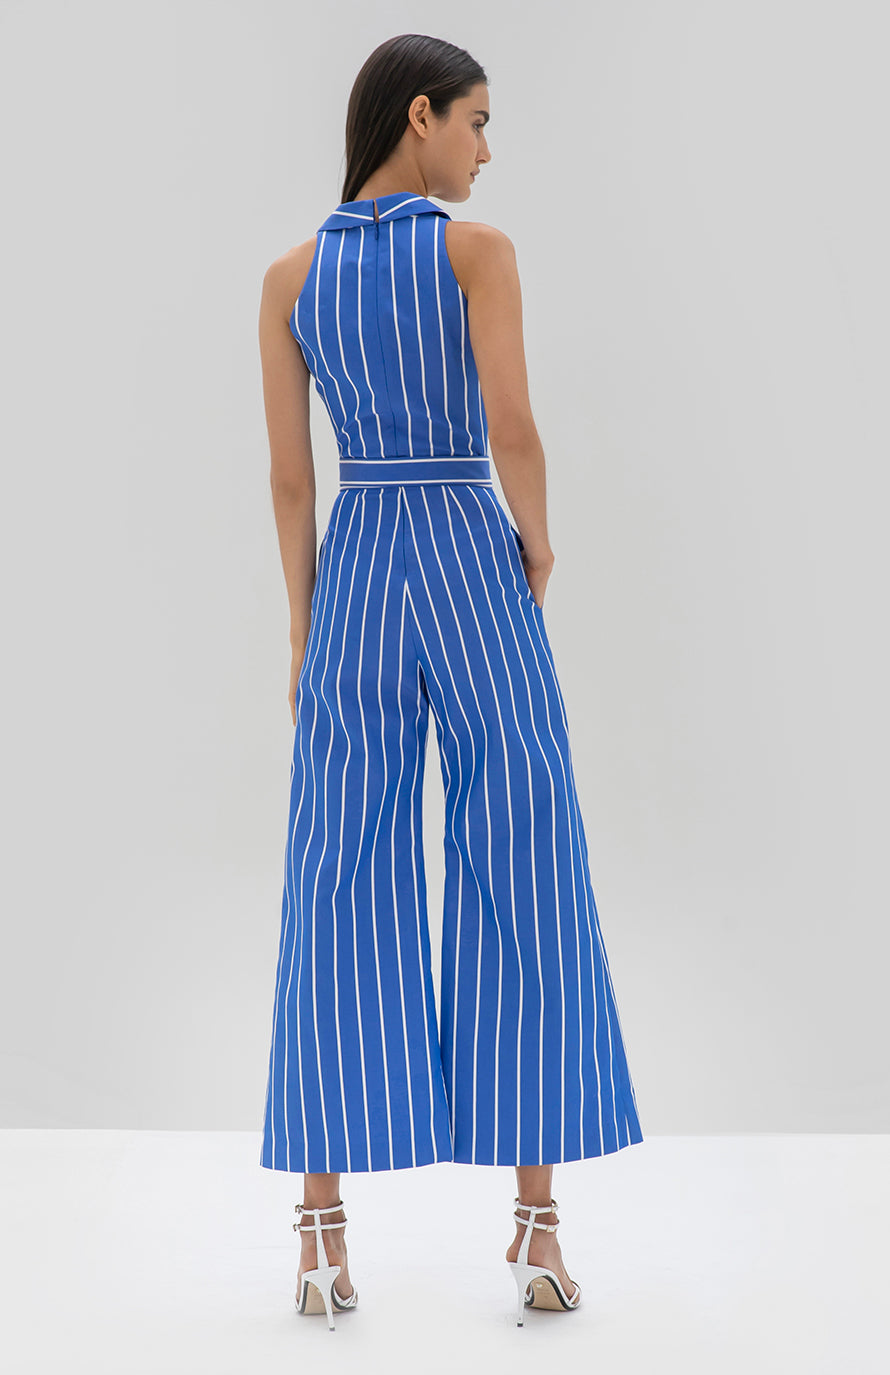 Alexis Eckhart Jumpsuit Blue Stripe - Rear View